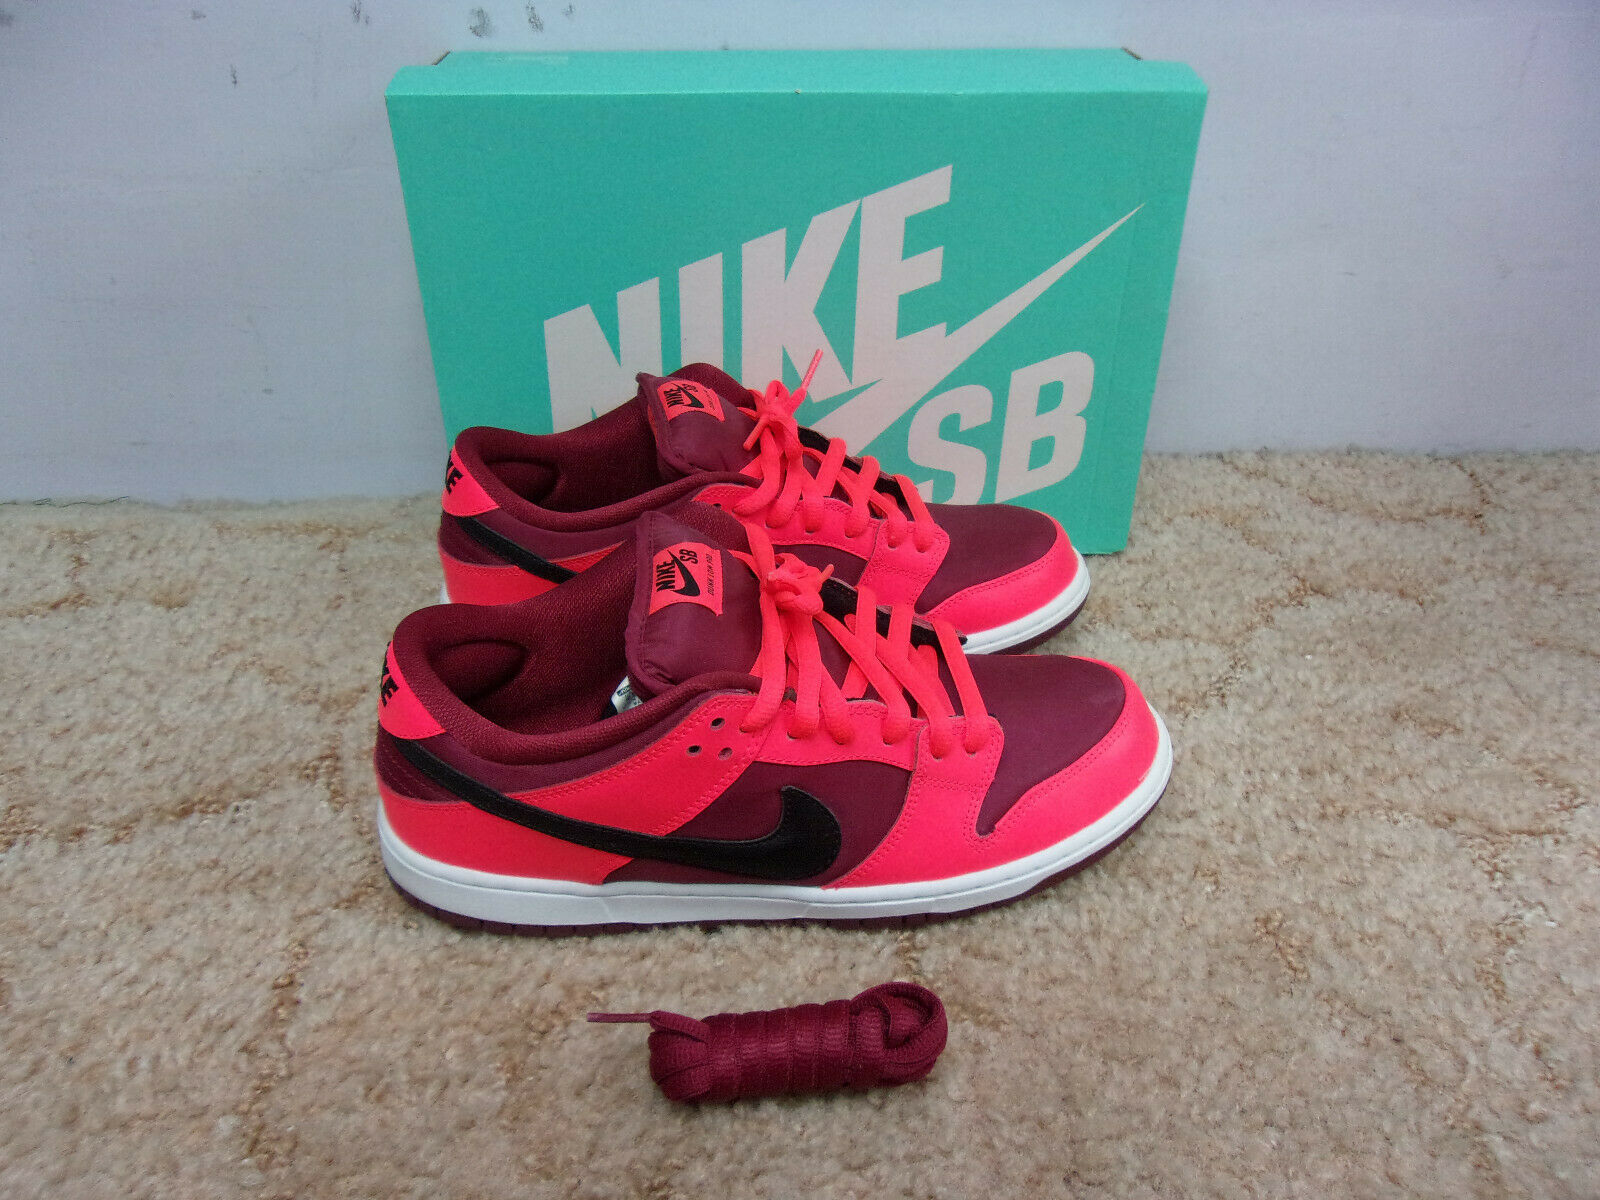 NIKE DUNK LOW PRO SB Laser Crimson Team Red shoes w Box Size 10.5 S35